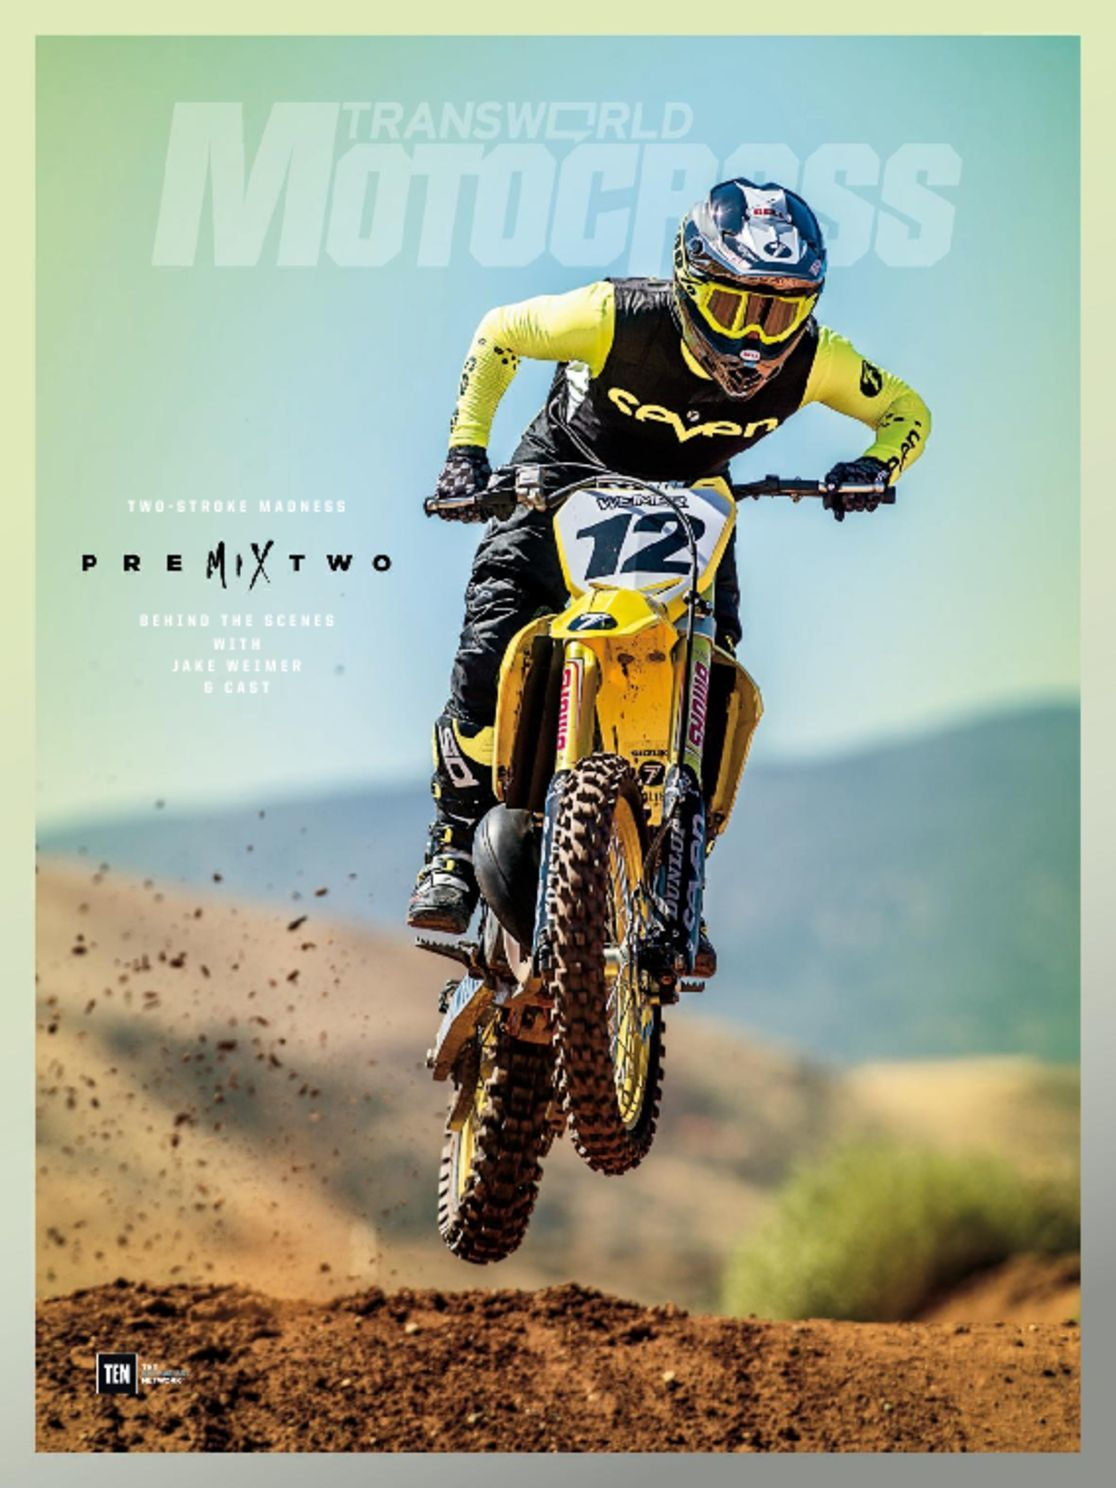 Motocross Transworld Magazine Subscription